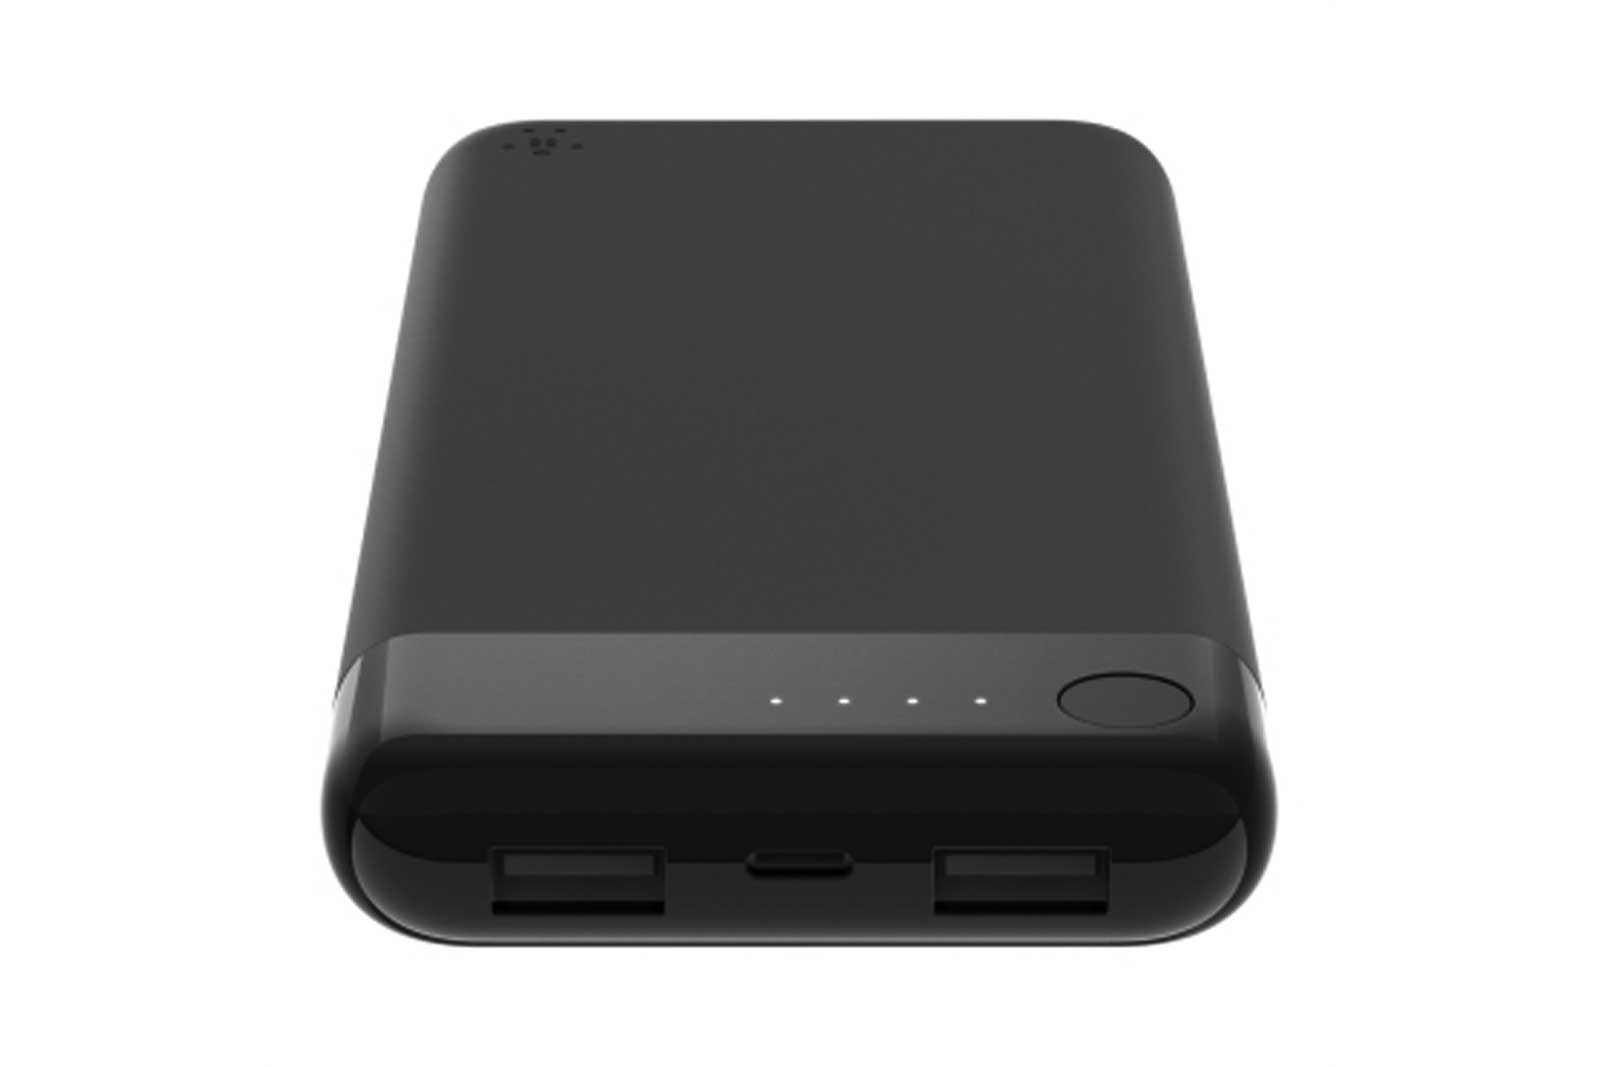 Belkin debuts MFi power bank with Lightning connector input